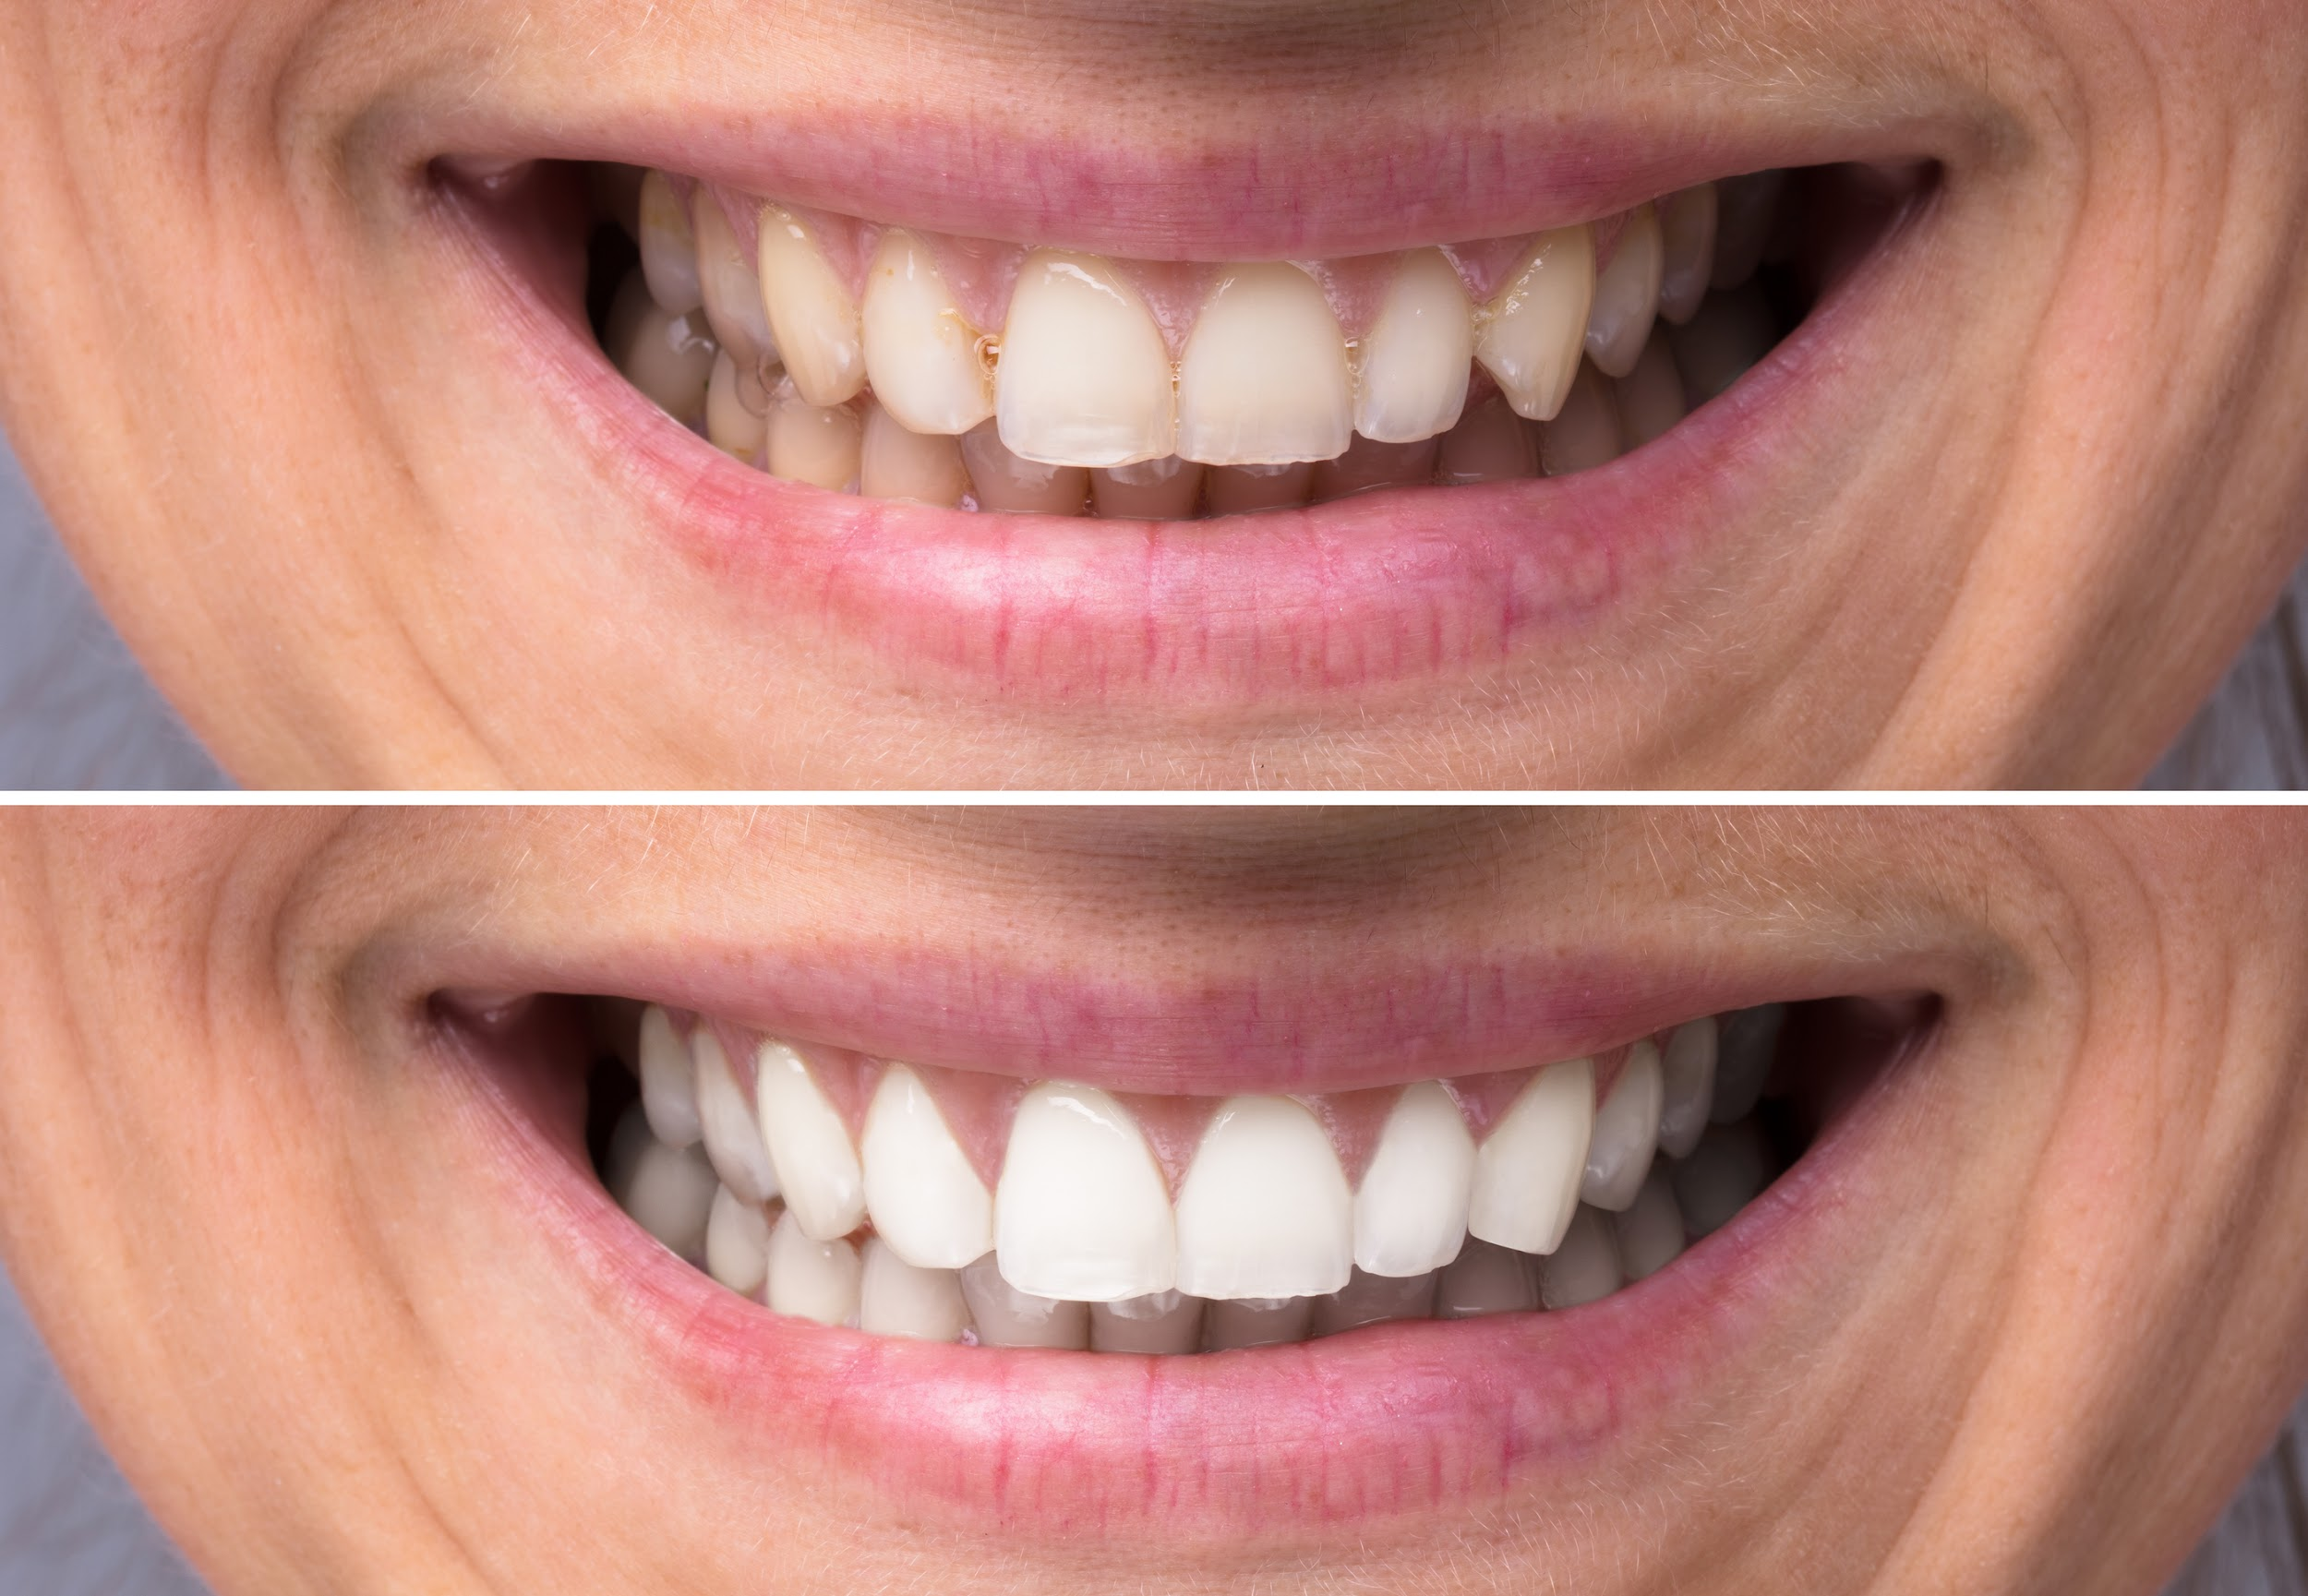 Before and after shots of a man's smile with whiter teeth